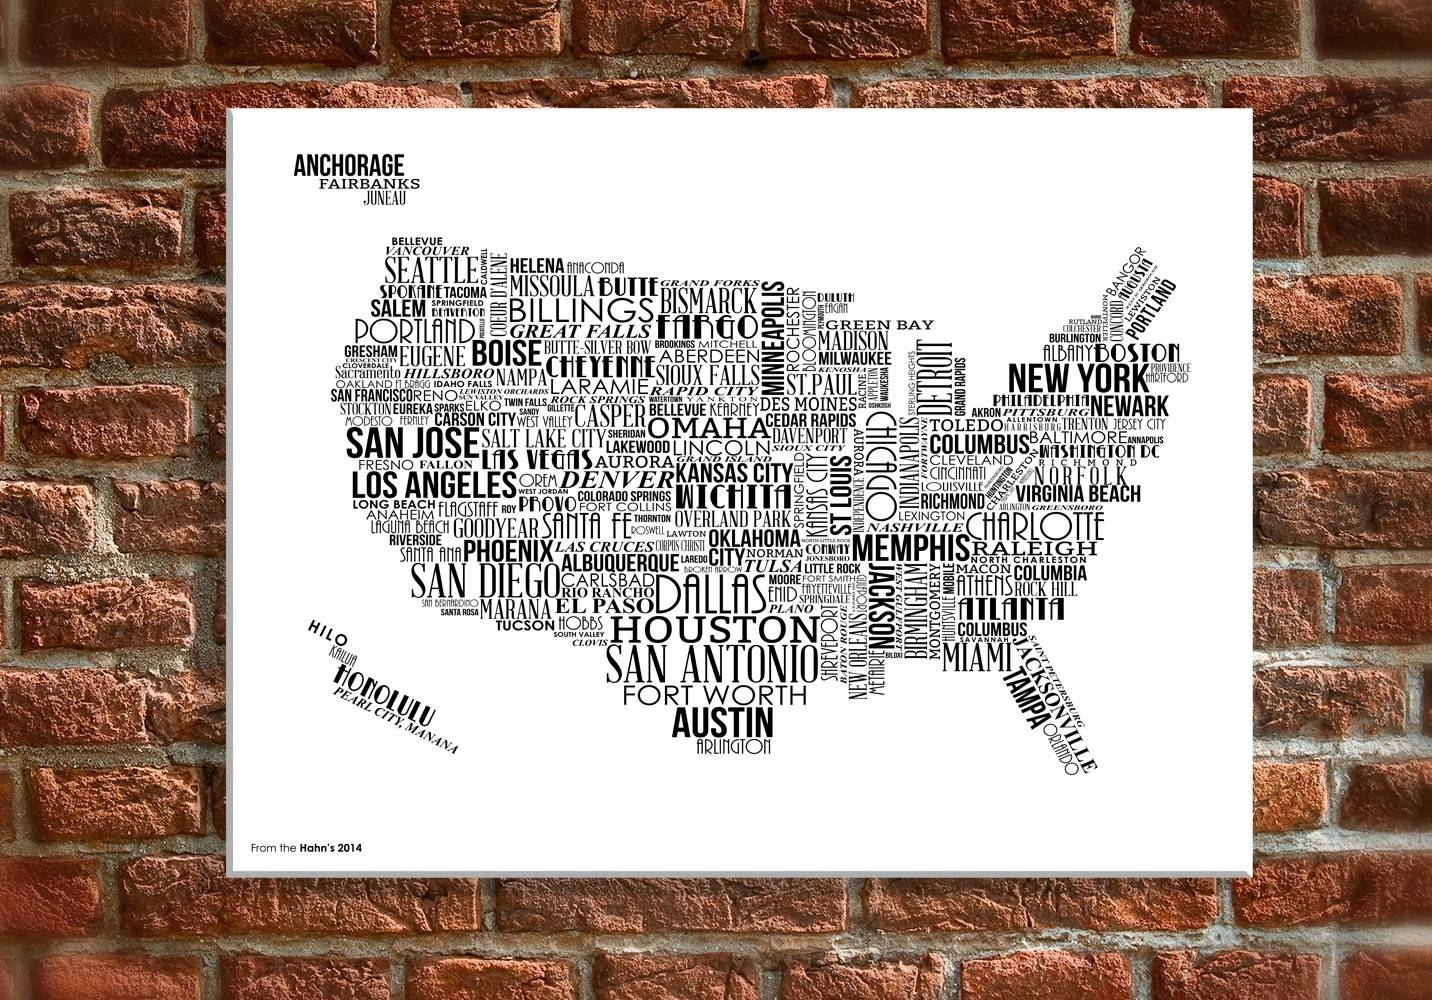 "16 X 20"" Canvas Wall Art – Usa Map With White Text Within Best And Newest Us Map Wall Art (View 1 of 20)"